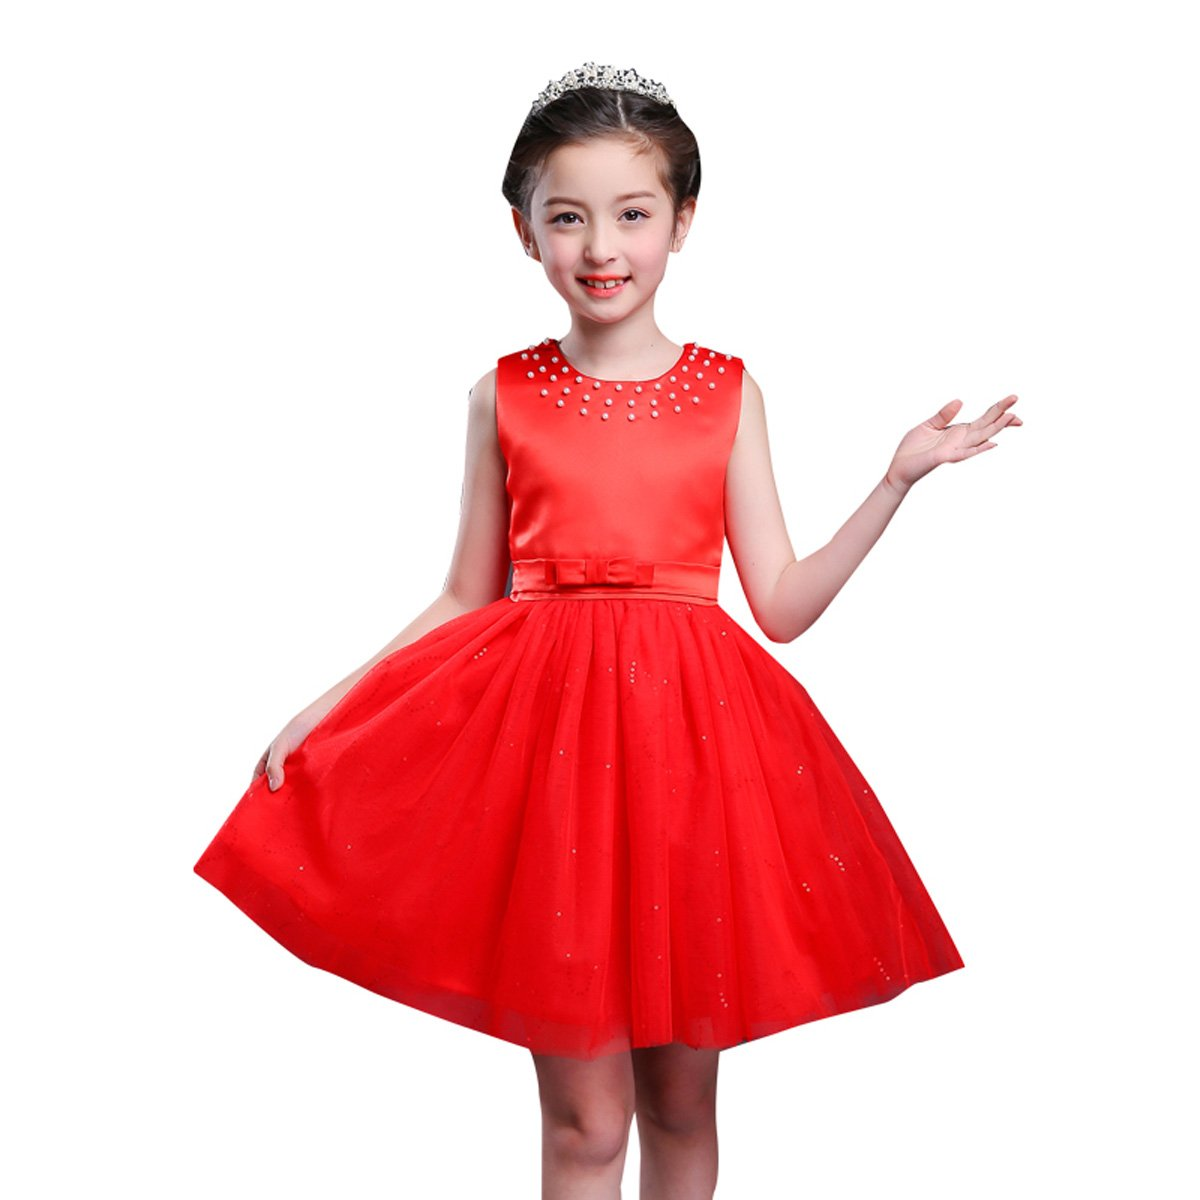 Flower Girl Dresses Strict Beautiful Girls Sleeveless Satin Bowknot Swing Ruffles Flower Girl Dress Stylish Princess Kids Girls Wedding Party Dress Sz 4-14 Carefully Selected Materials